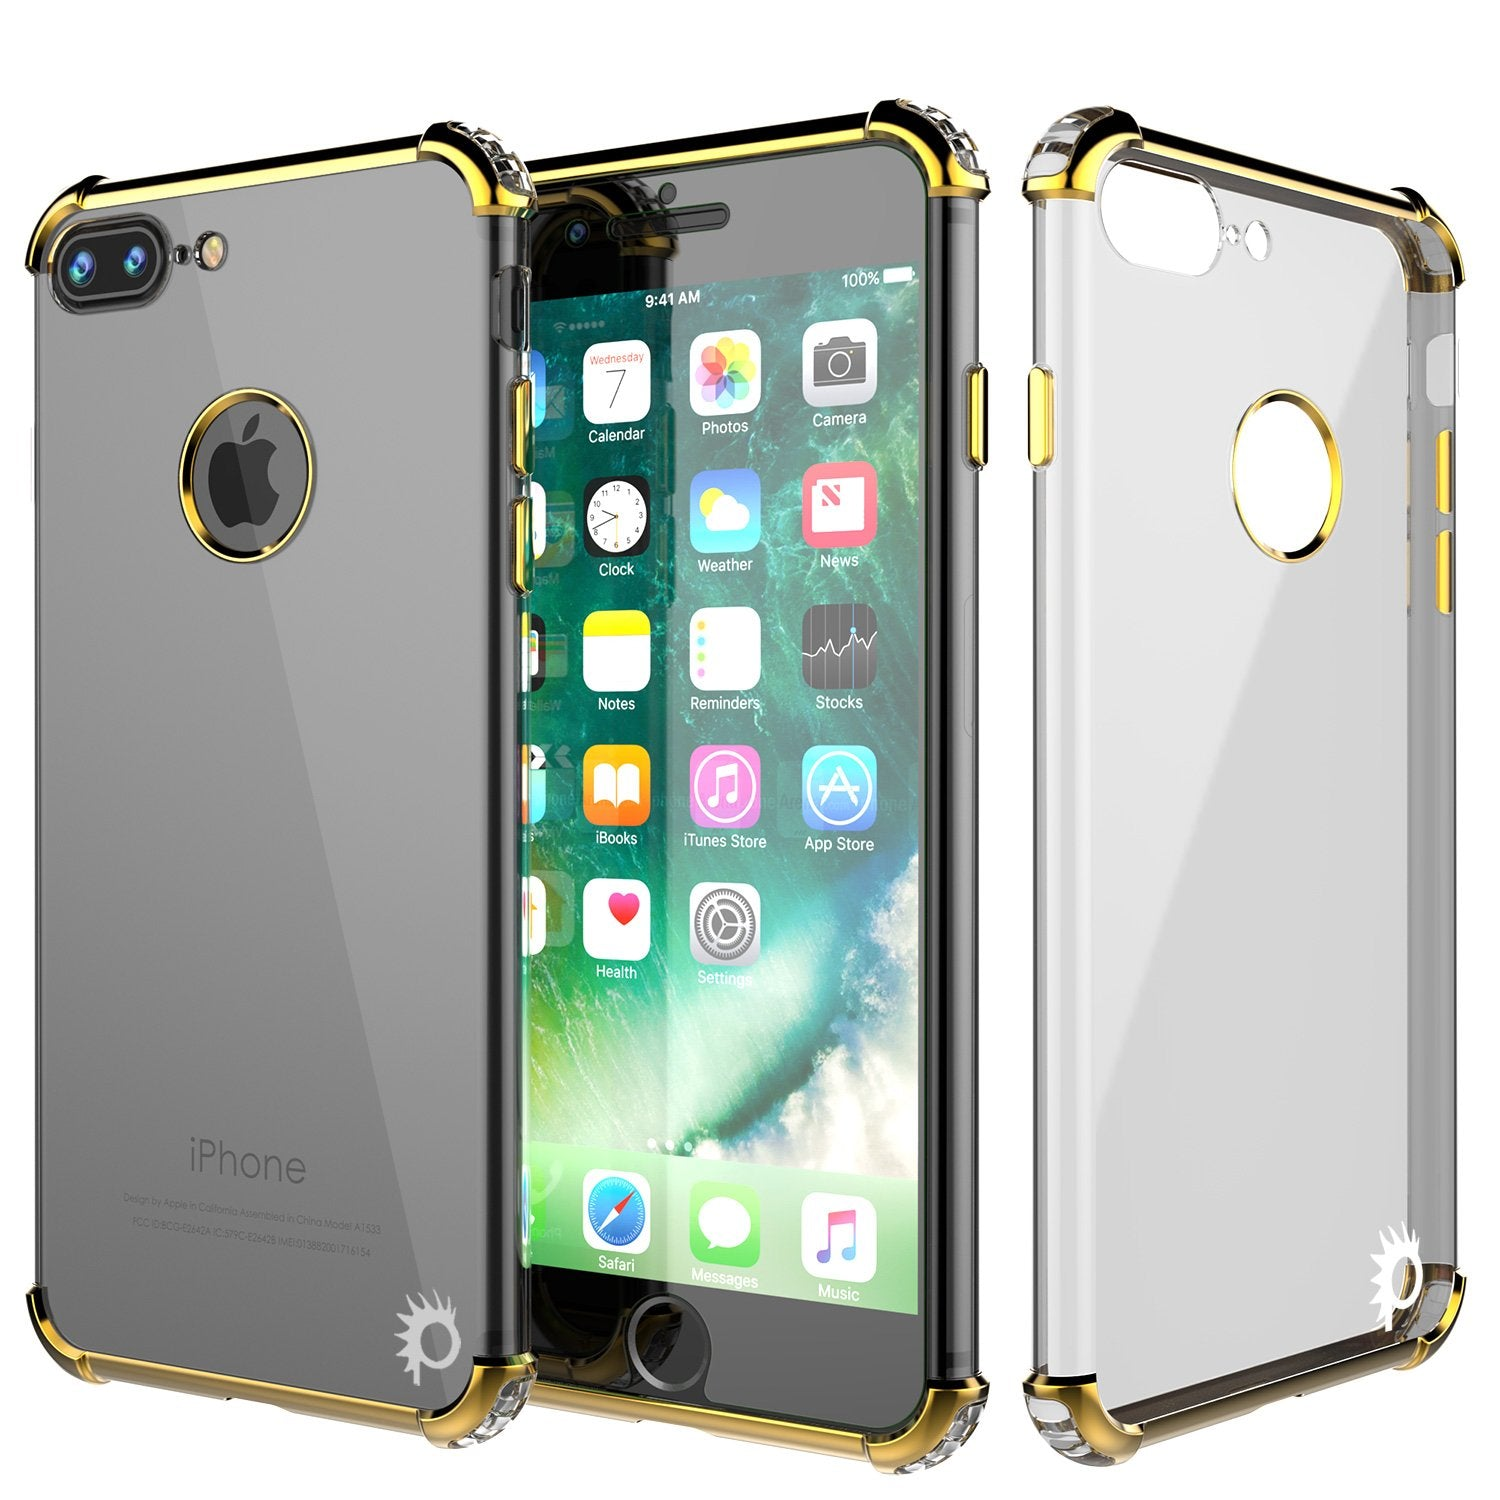 iPhone 7 PLUS Case, Punkcase BLAZE SERIES Protective Cover [Gold]